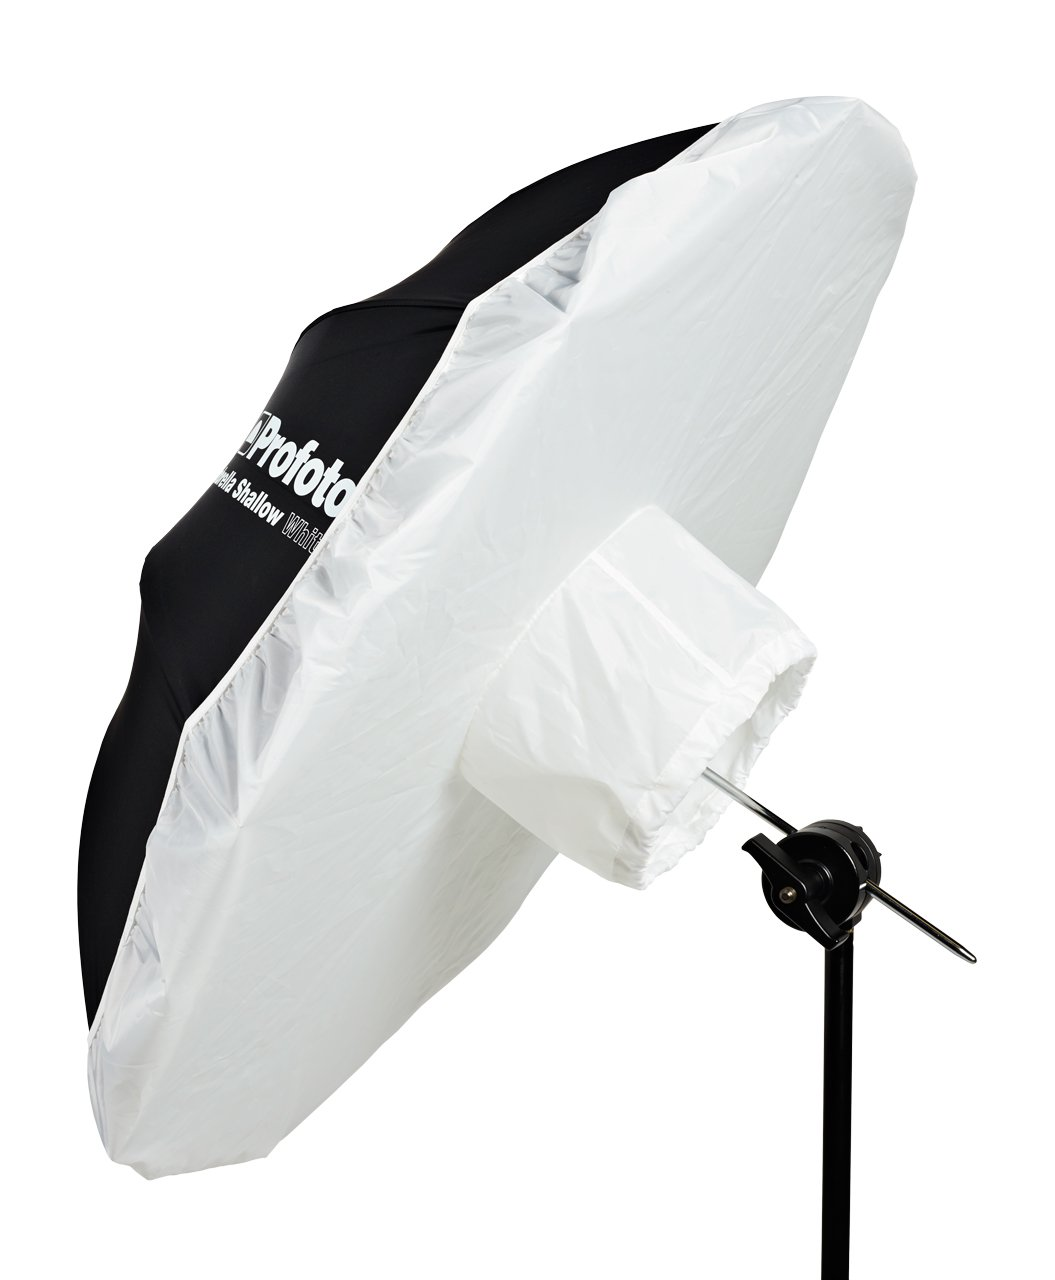 Profoto Umbrella Diffuser - Small 100990